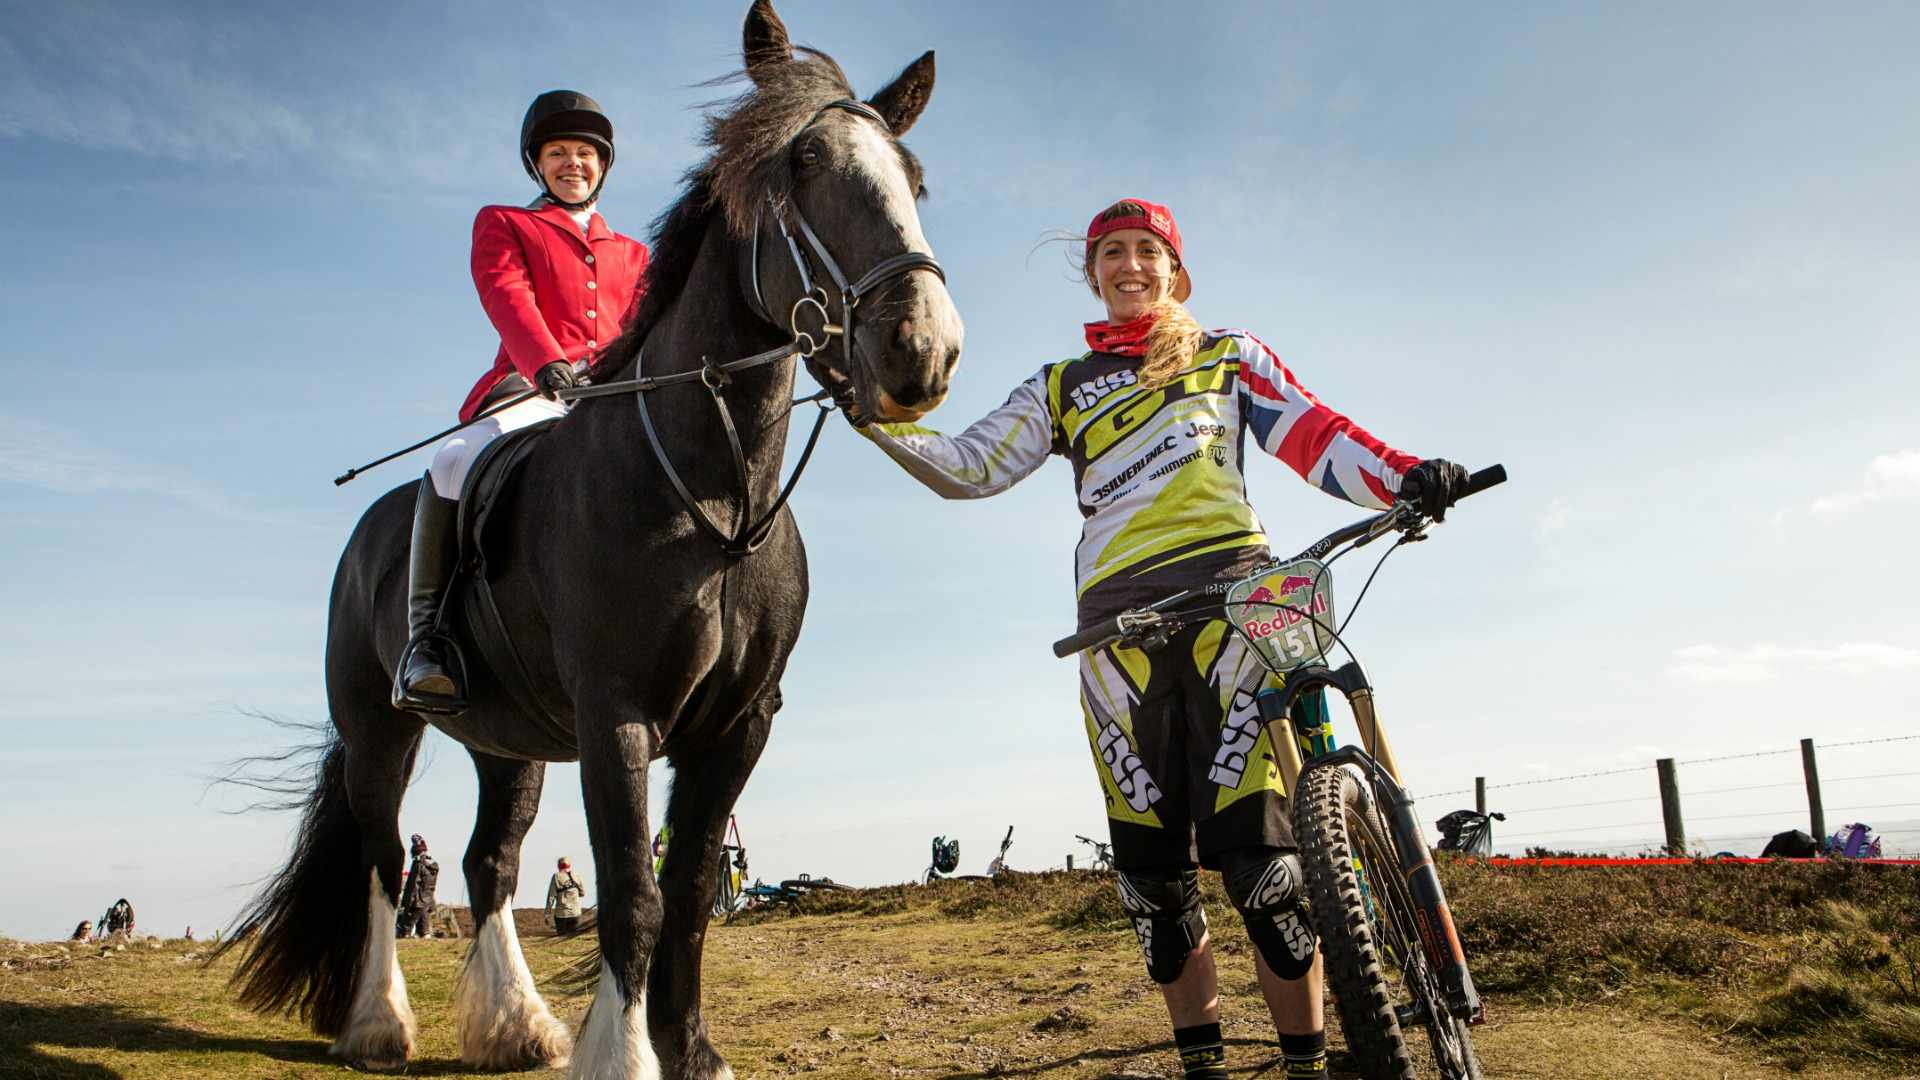 Are you ready to ride with Rachel Atherton in the 2016 Red Bull Fox Hunt?